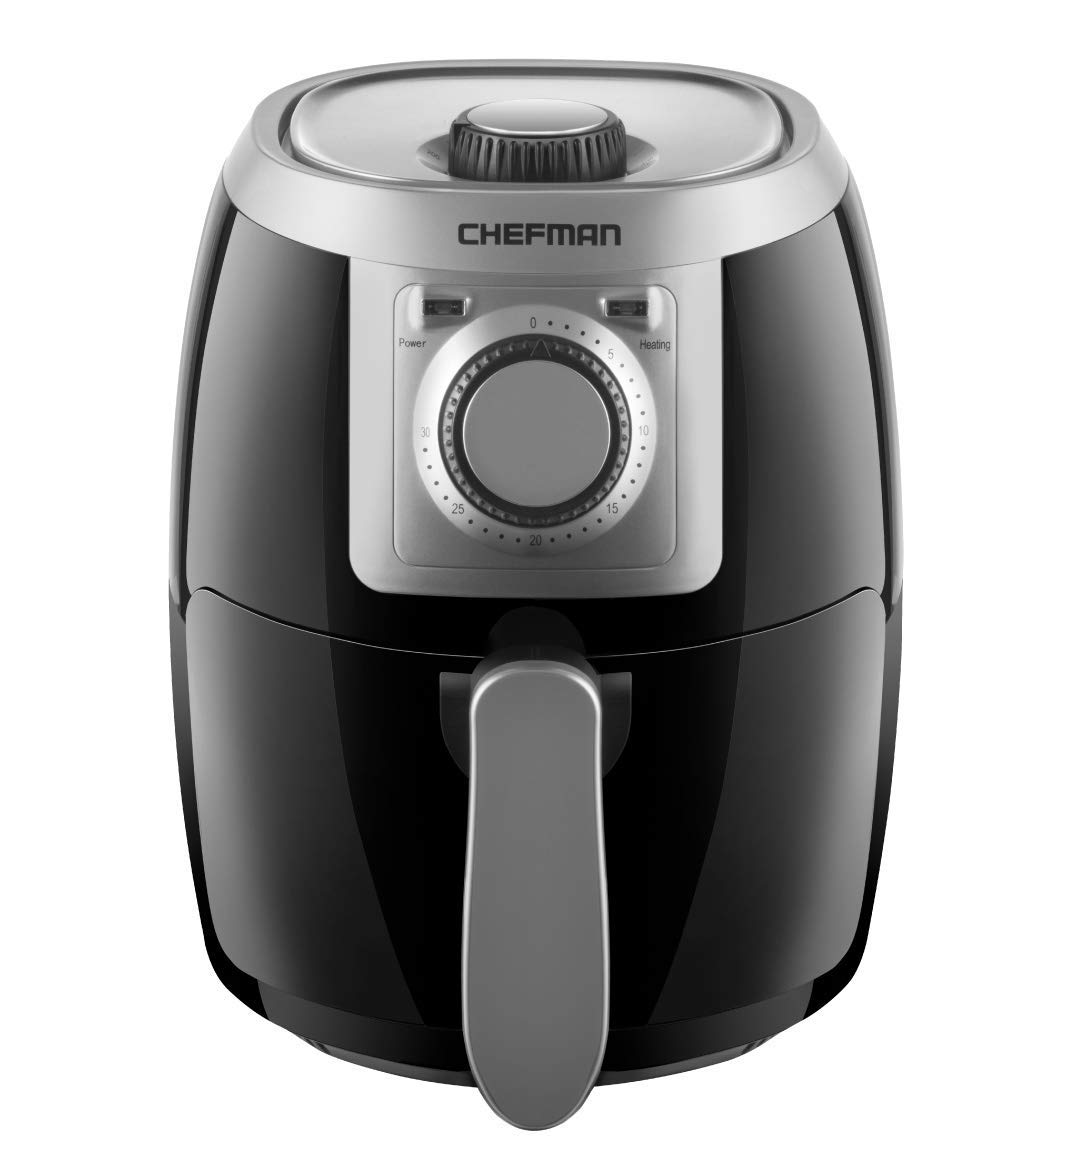 Chefman TurboFry 2 Liter Air Personal Compact Healthy Fryer w/Adjustable Temperature Control, 30 Minute Timer and Dishwasher Safe Basket, Black (Renewed)